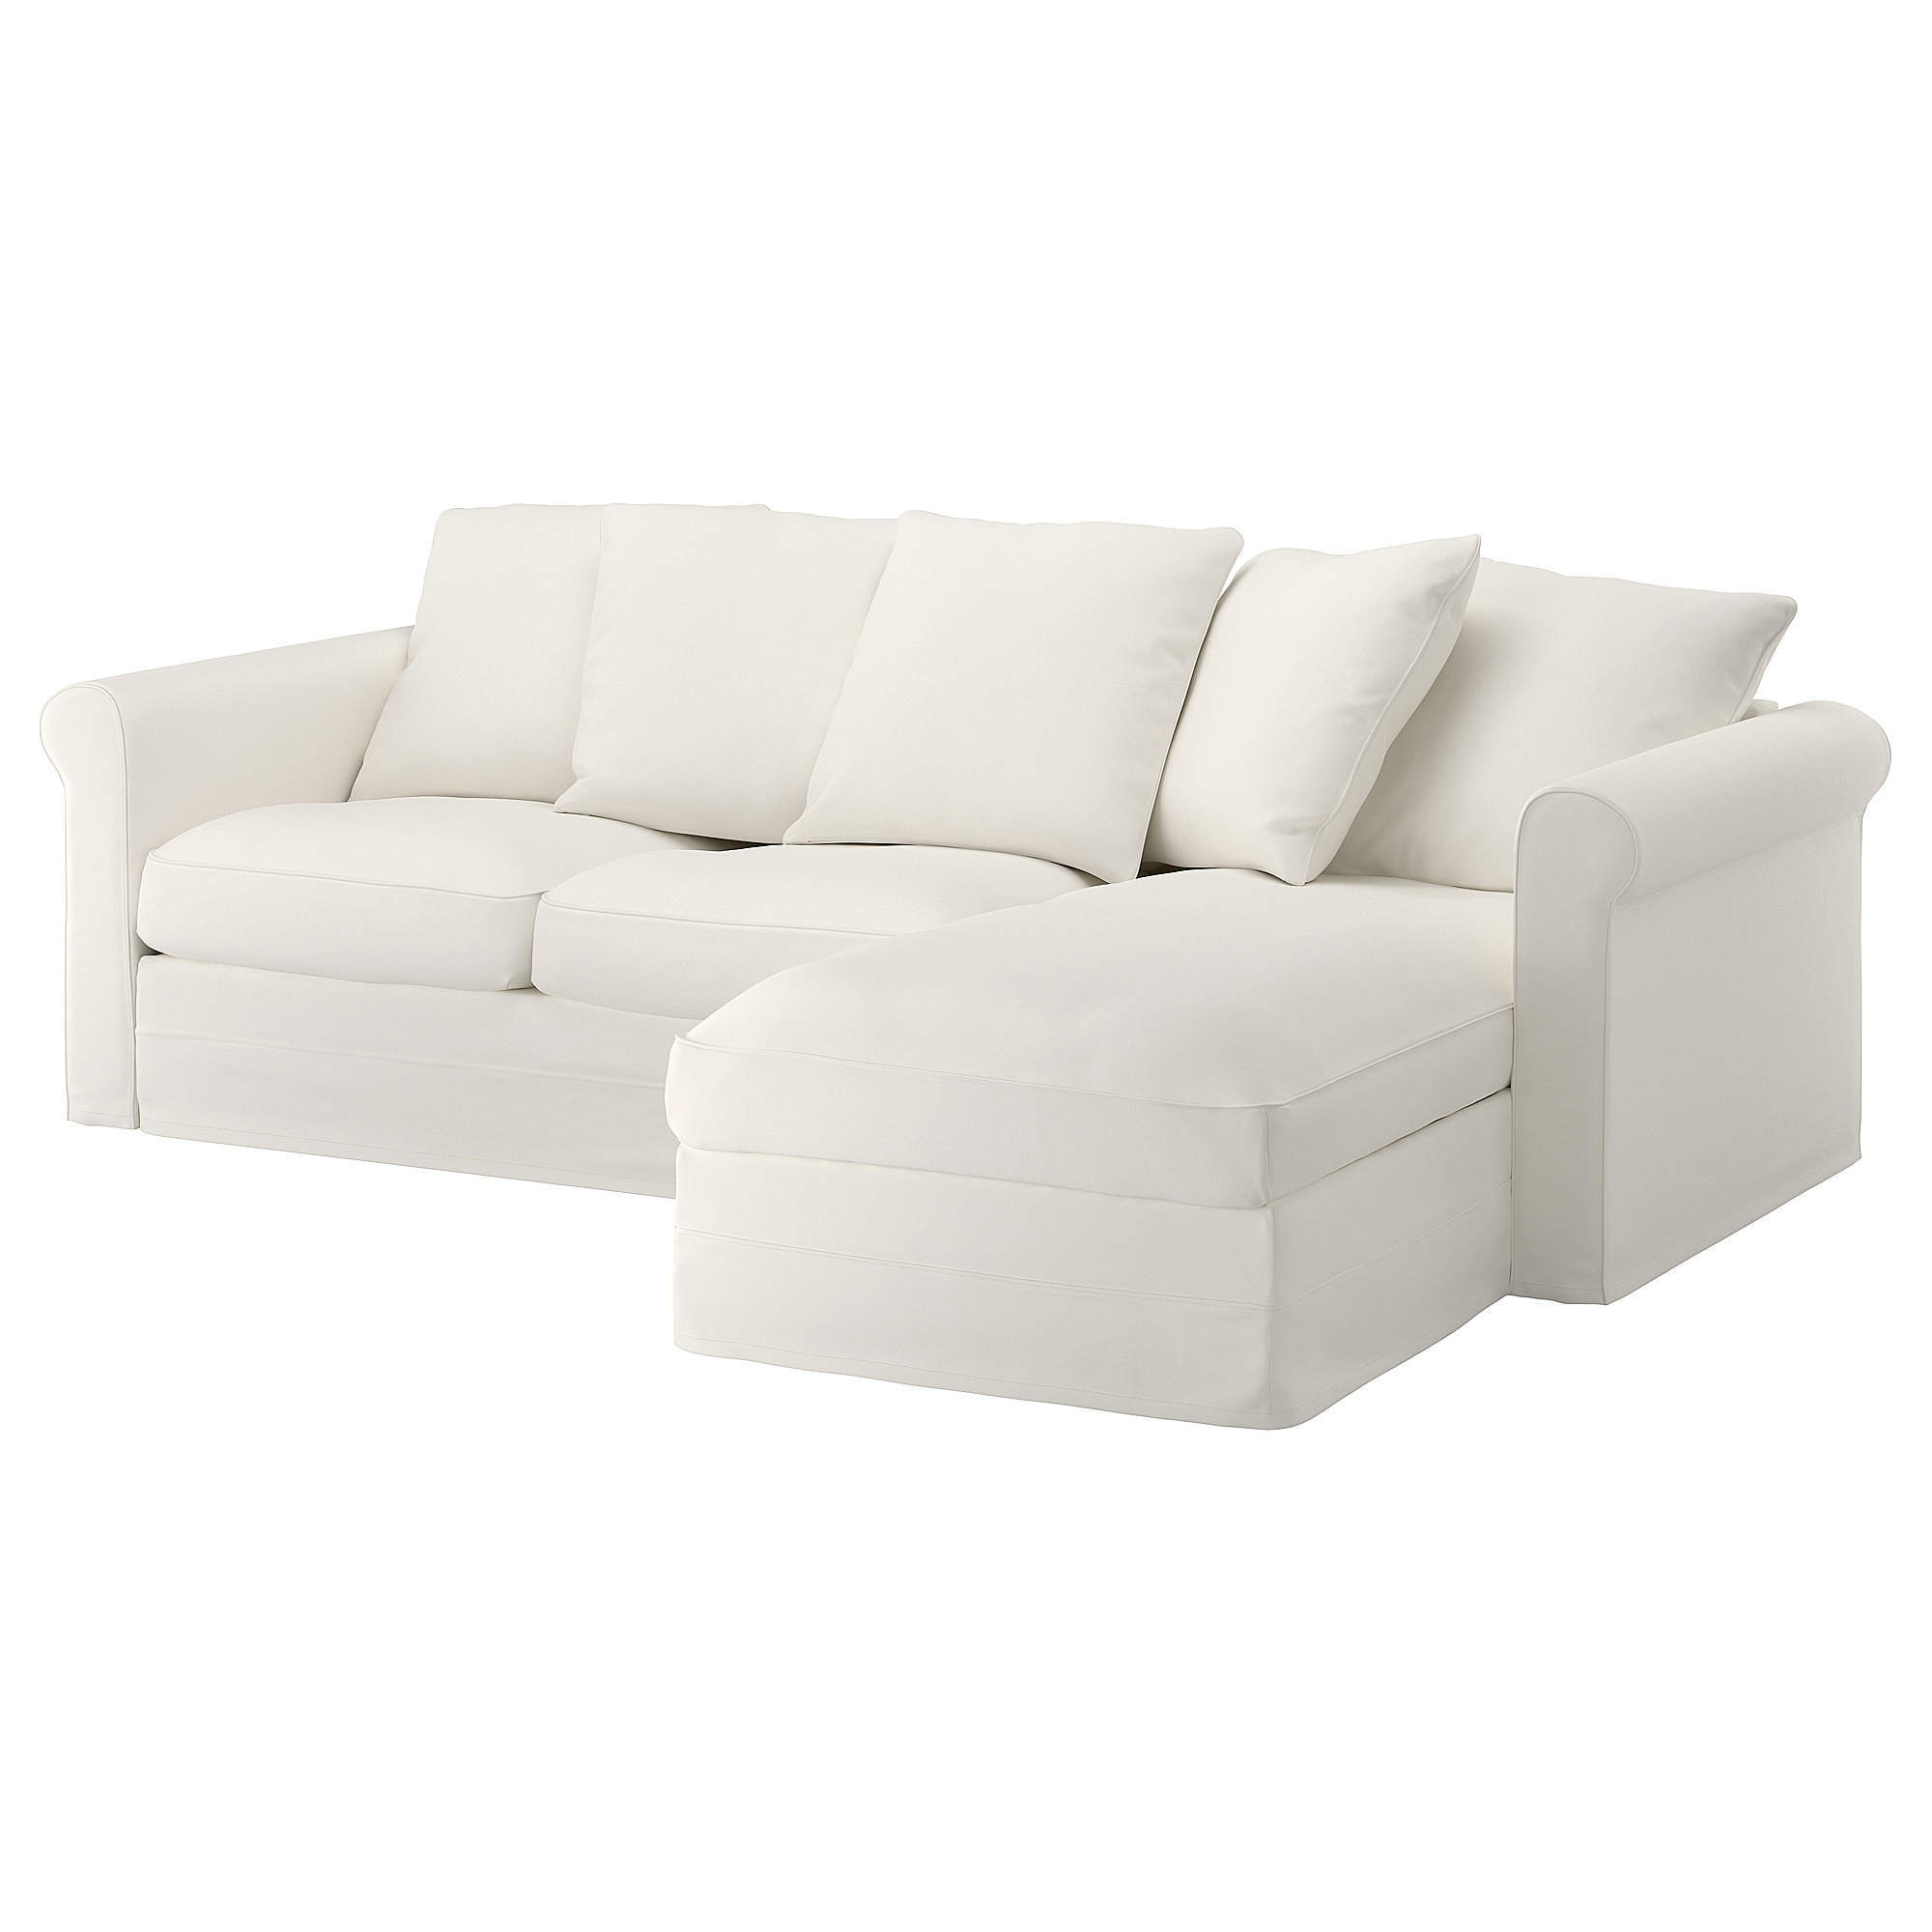 Bettsofa Ikea GrÖnlid 3 Seat Sofa With Chaise Longue Inseros White